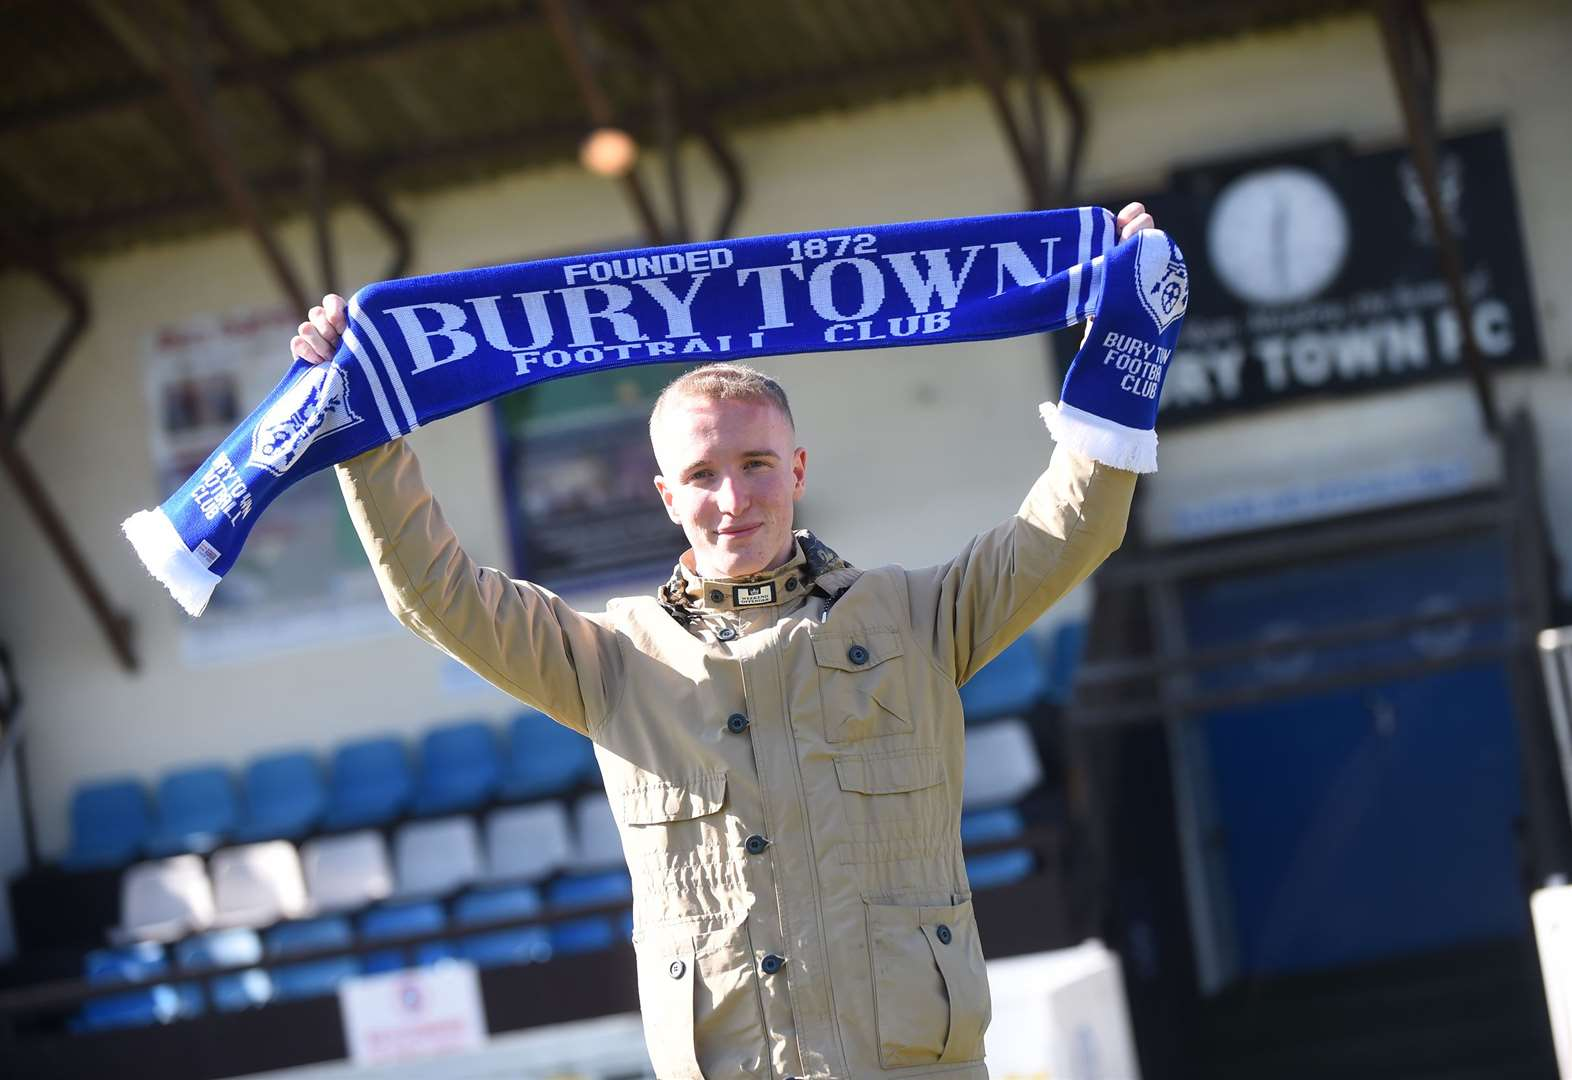 Supporter starts up online fundraiser to help out Bury